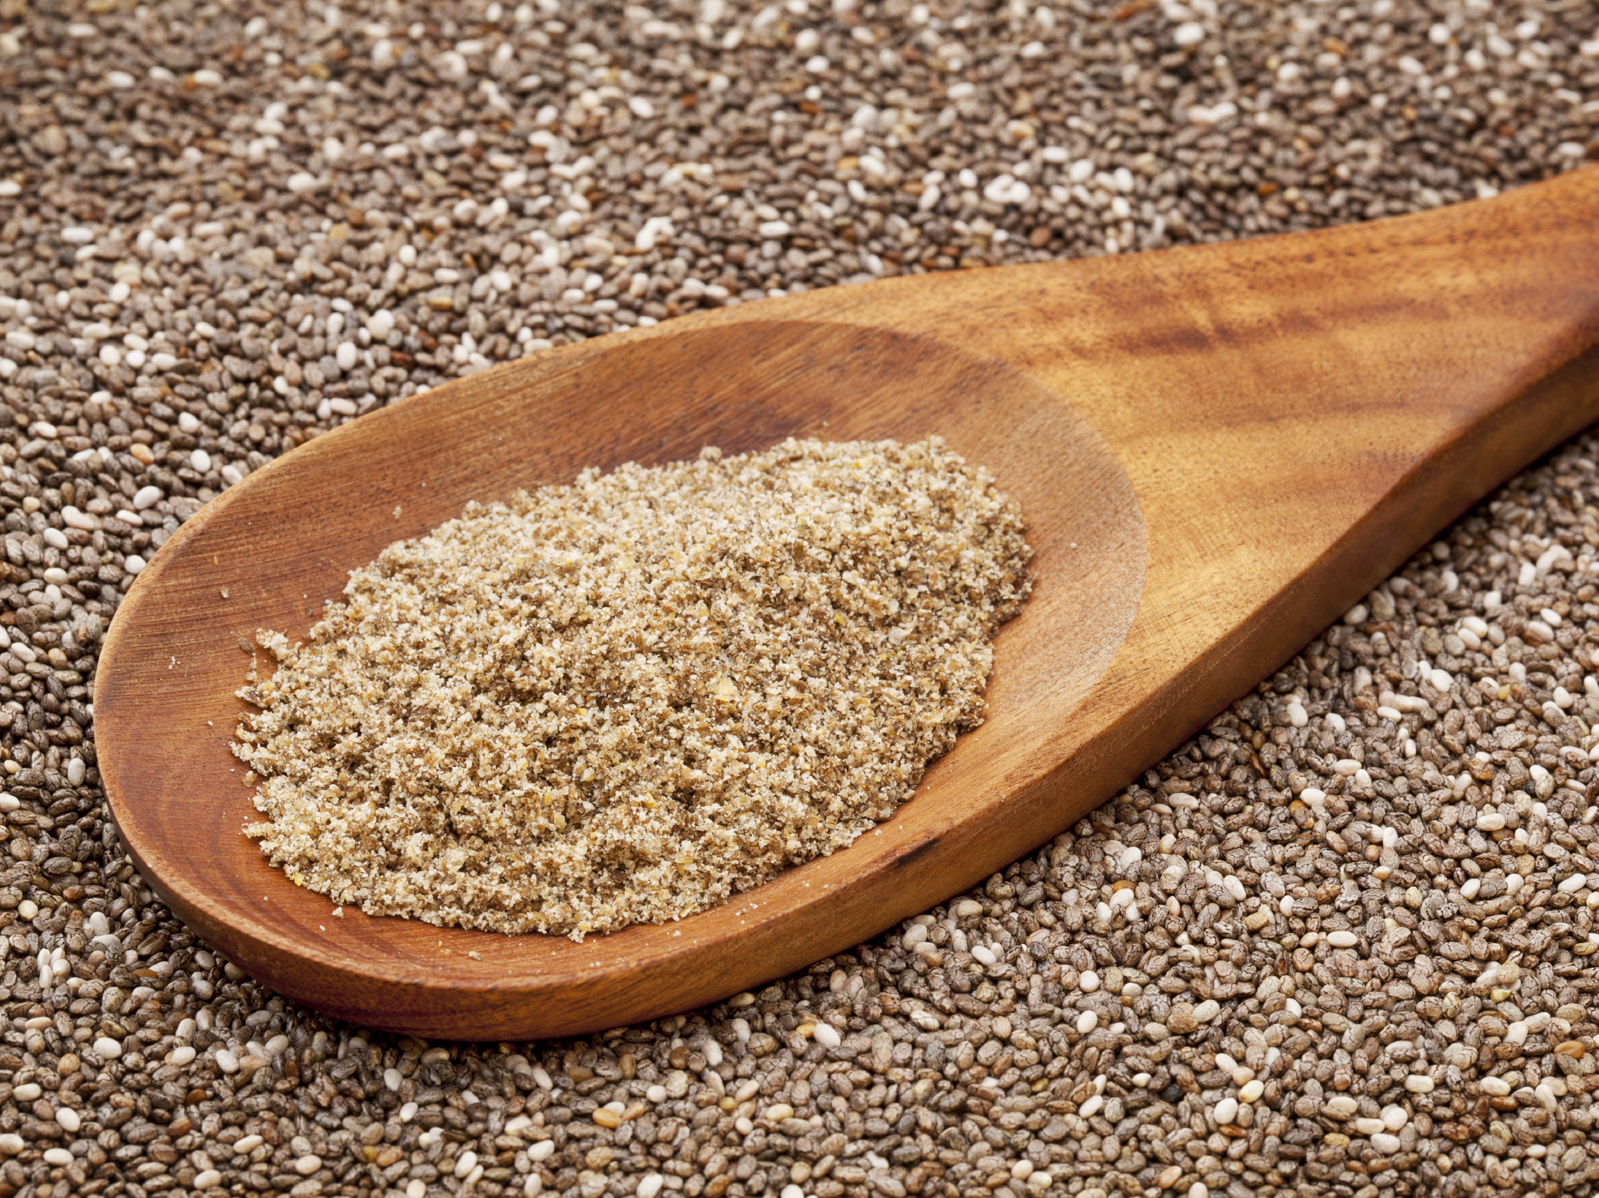 Salmonella has recently been found in ground chia seed powder, a superfood being put in everything from smoothies to cereal. Photo: Marek Uliasz/iStockphoto